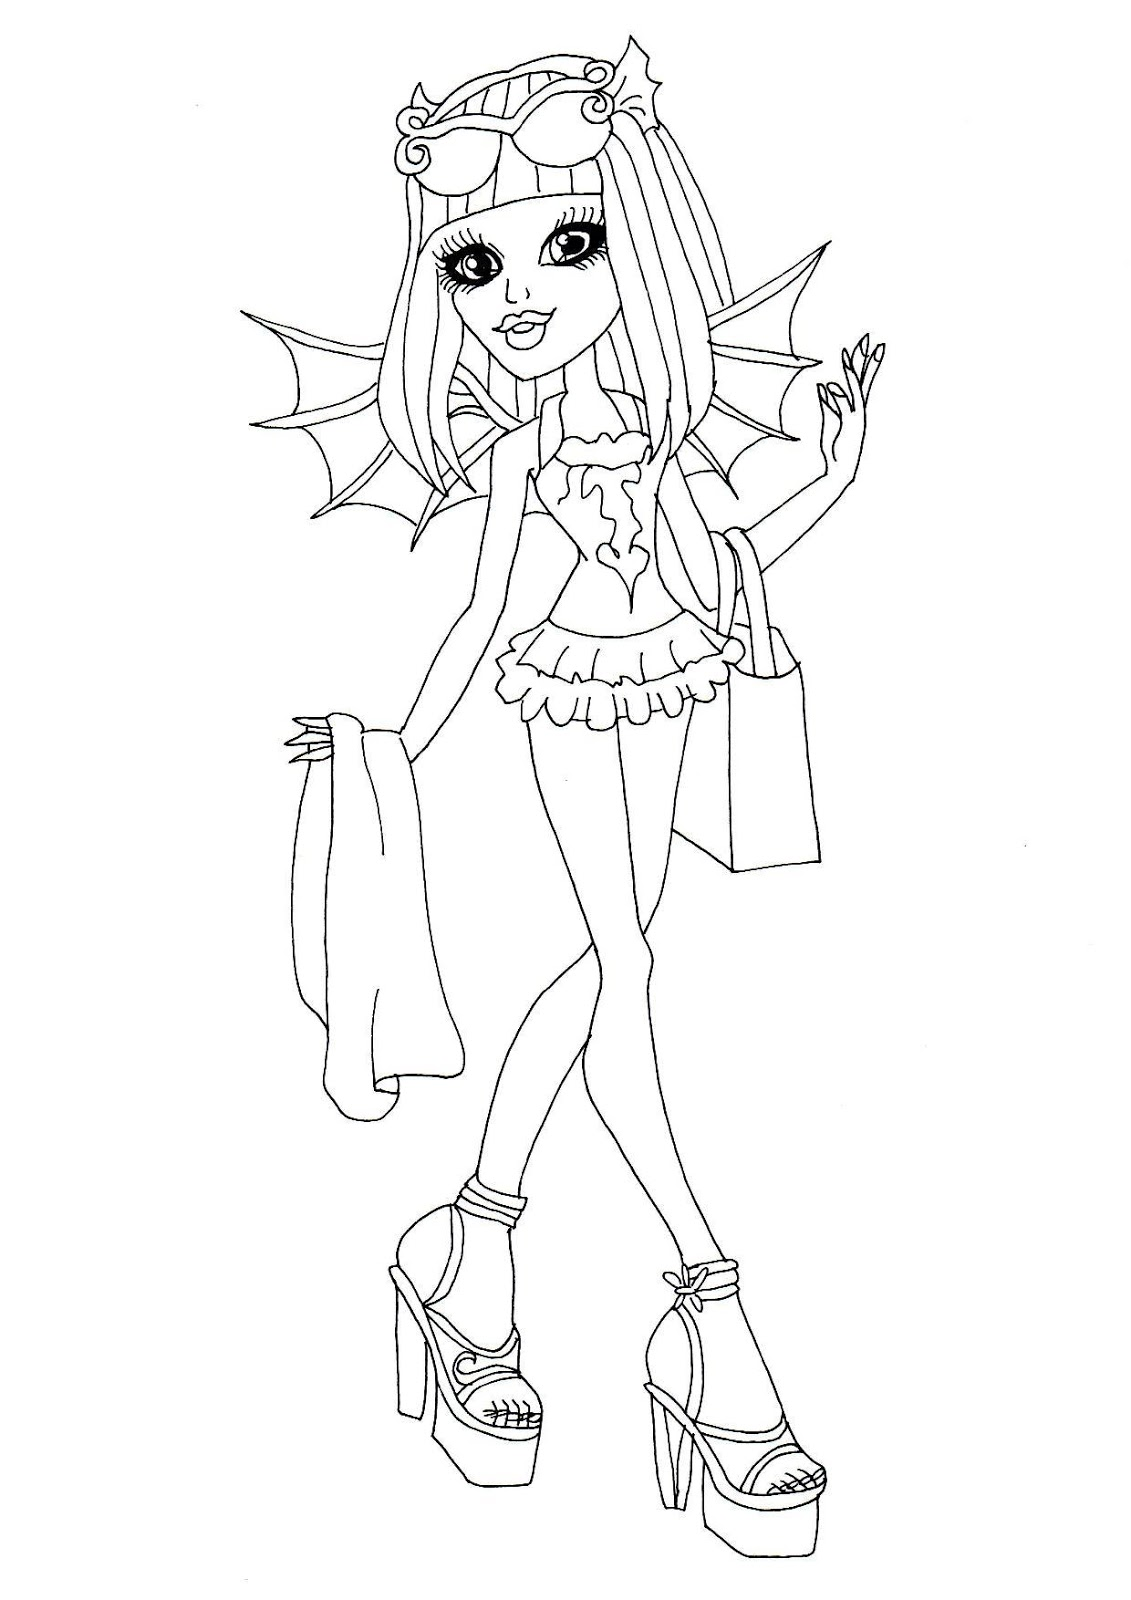 Rochelle Goyle Swim Class Coloring Page PLEASE CLICK HERE TO PRINT Free Printable Monster High